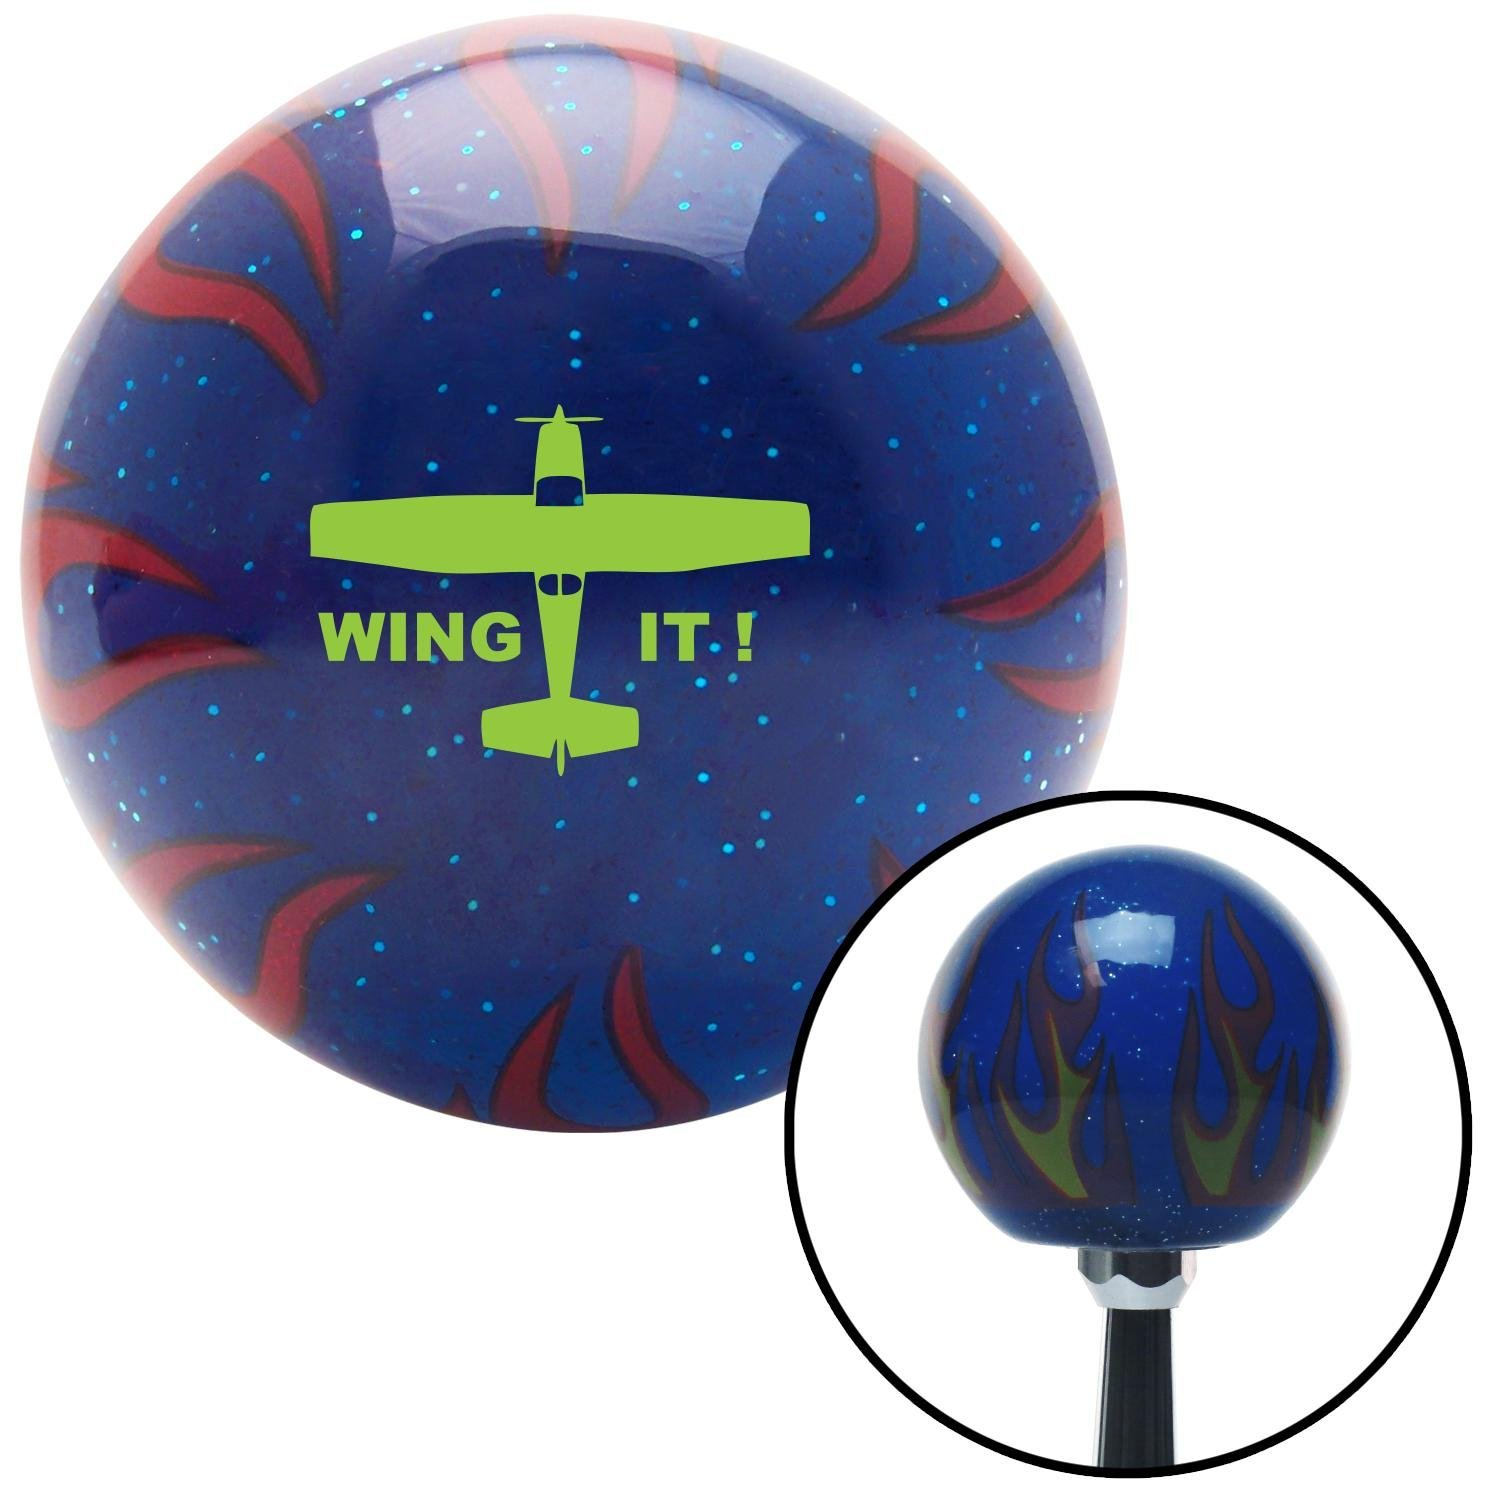 American Shifter 251744 Blue Flame Metal Flake Shift Knob with M16 x 1.5 Insert Green Wing It